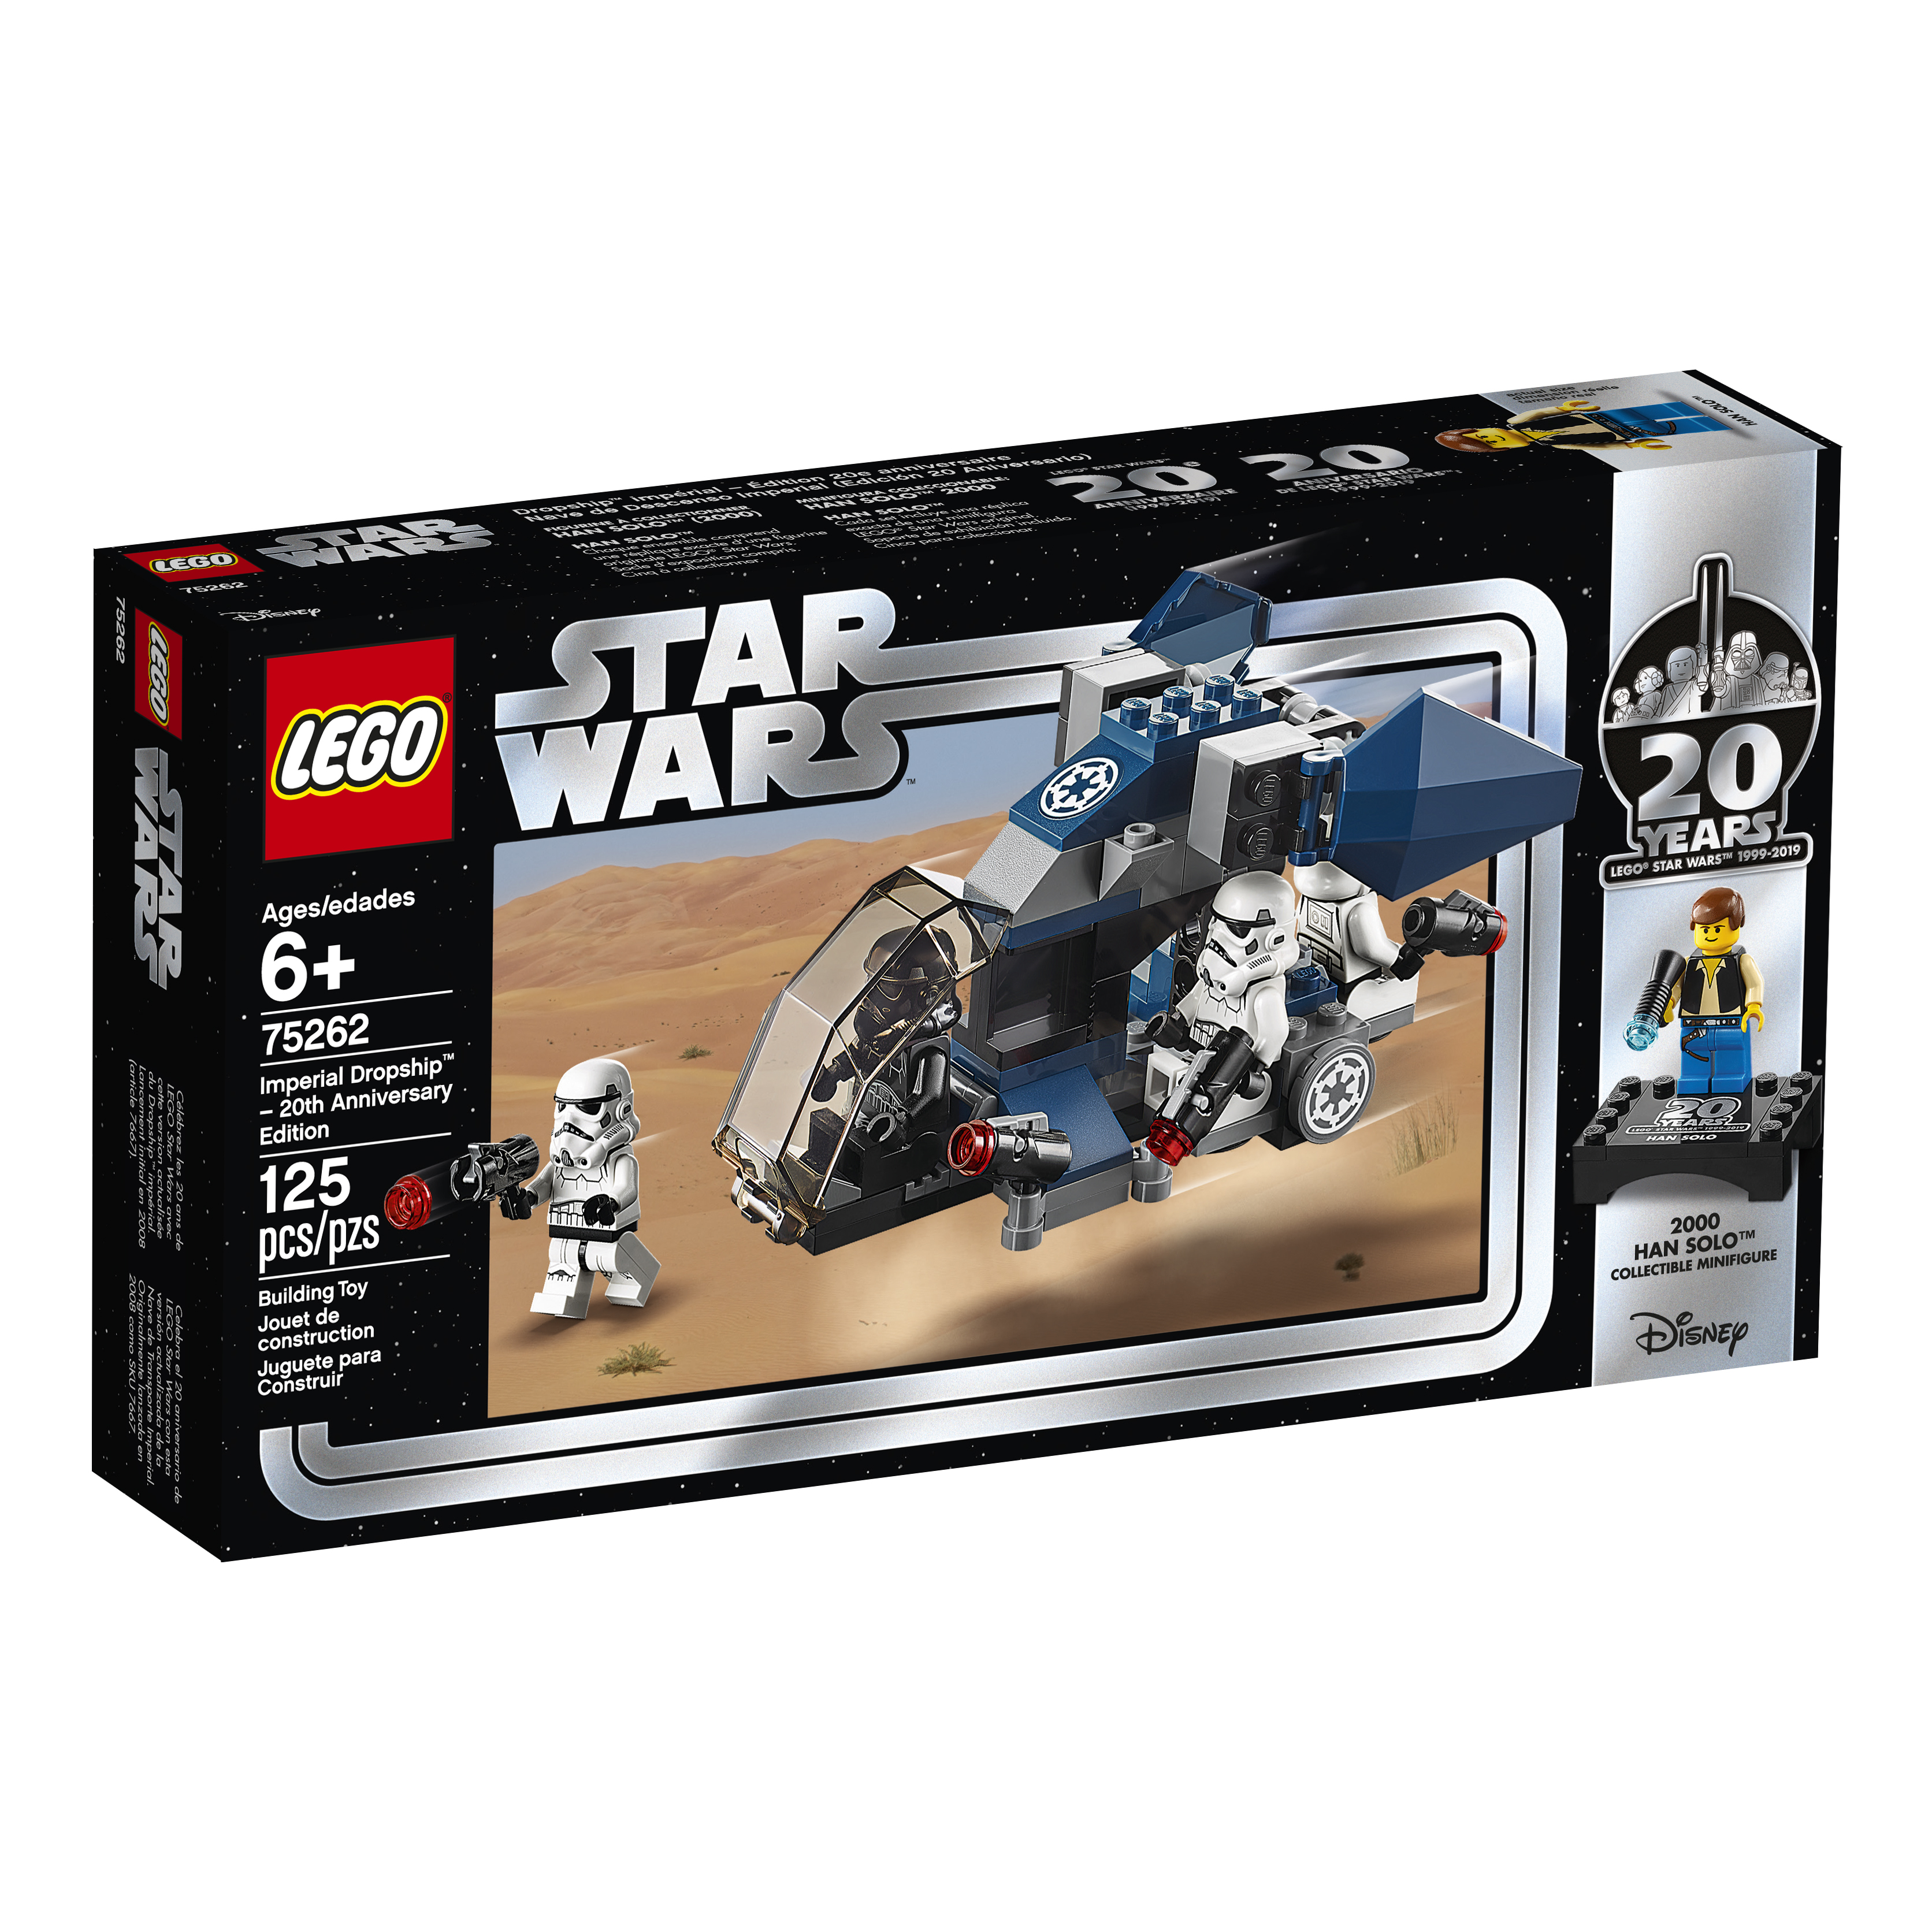 SW 20th Anniversary Edition Imperial Dropship Lego Set 1